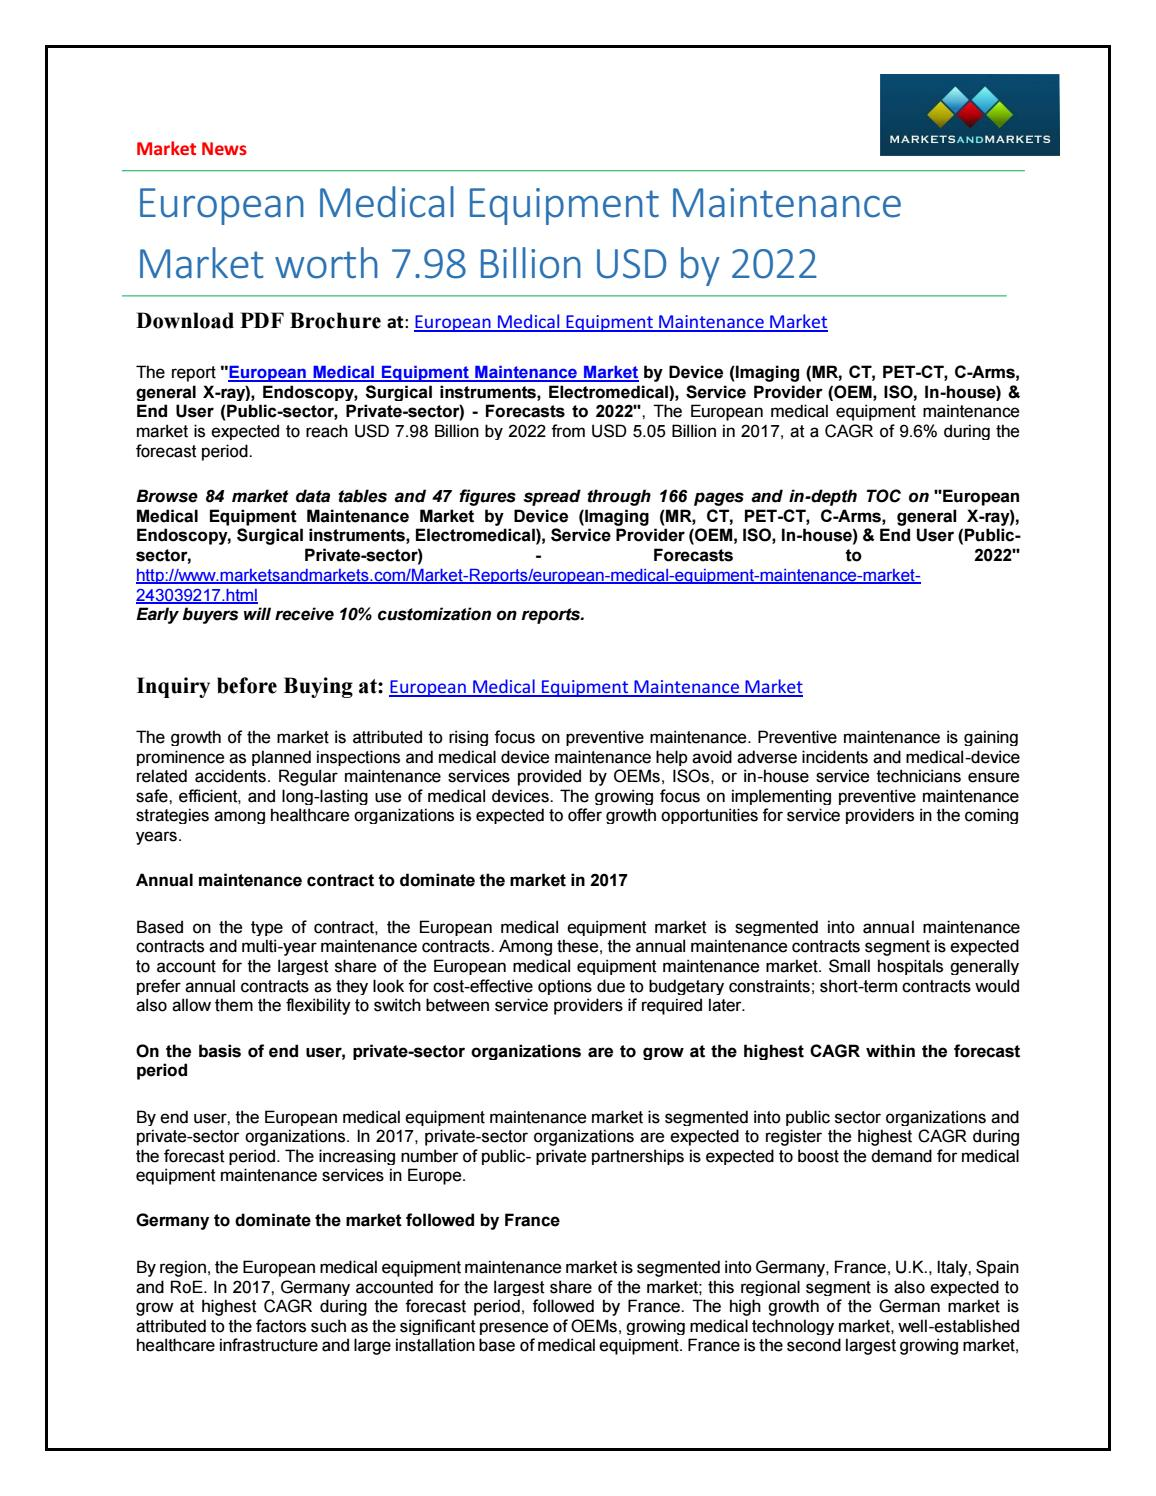 European medical equipment maintenance market by Abhimanyu